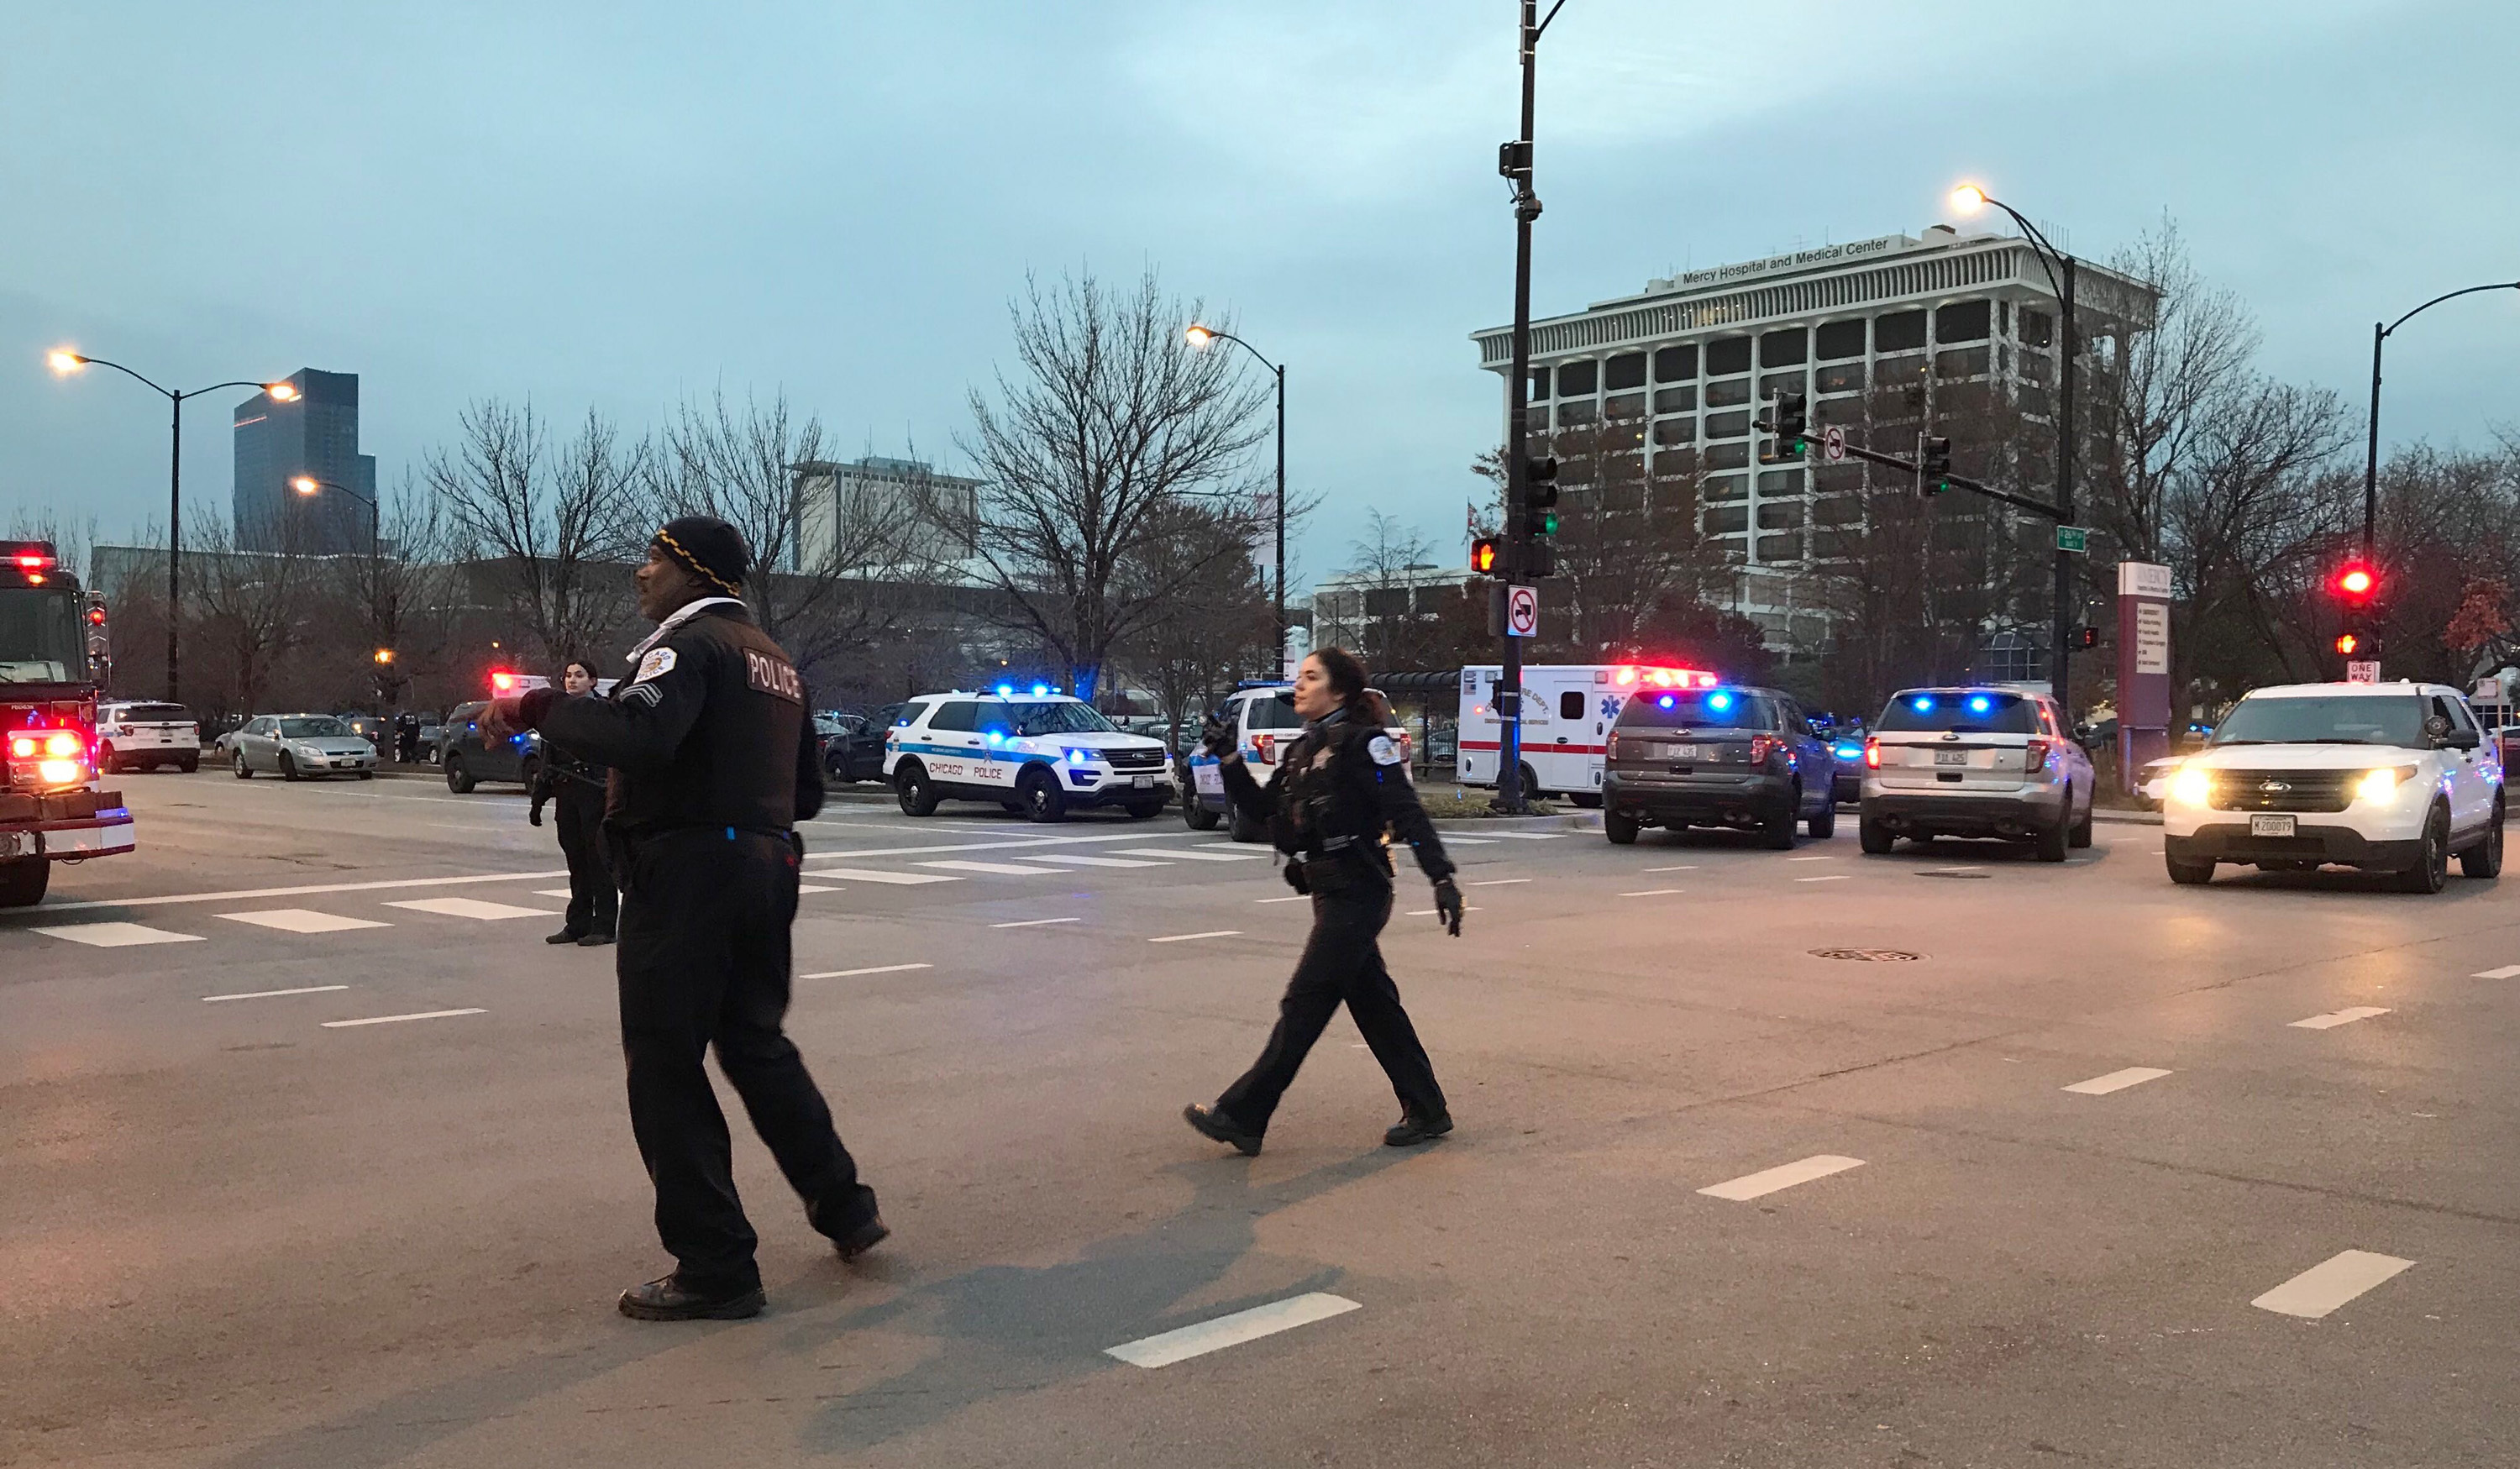 At least four dead, including gunman, in Chicago hospital shooting